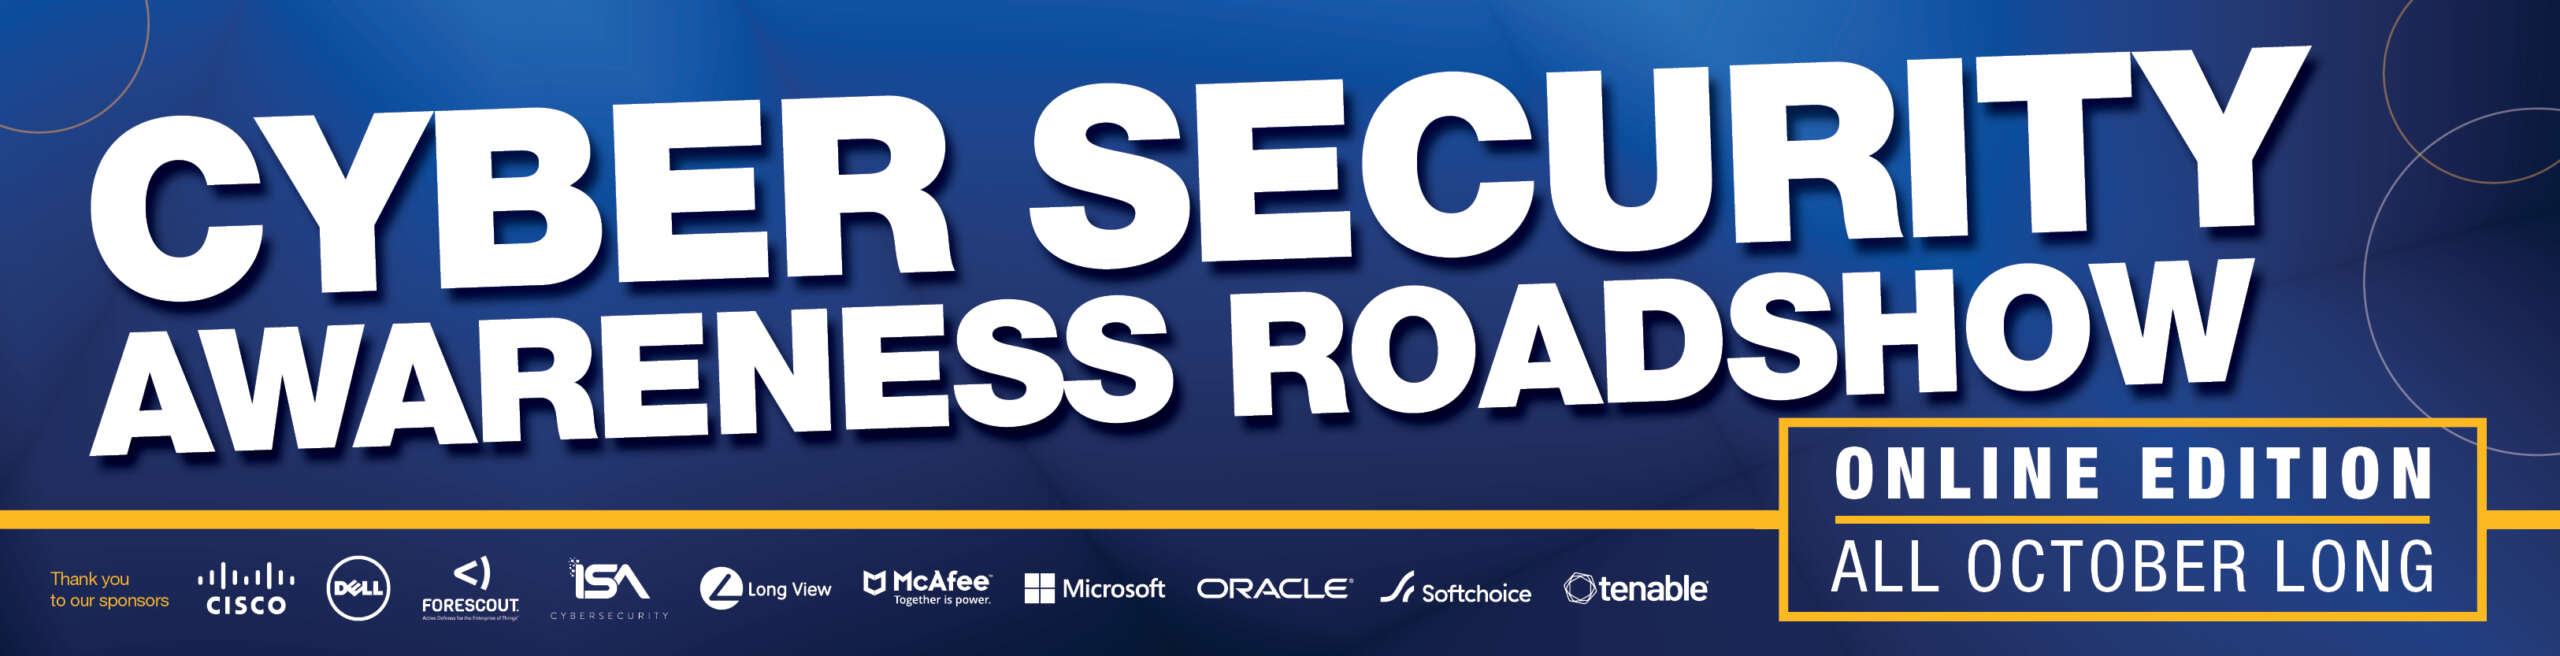 Cyber Security Awareness Roadshow - Online edition - All October long